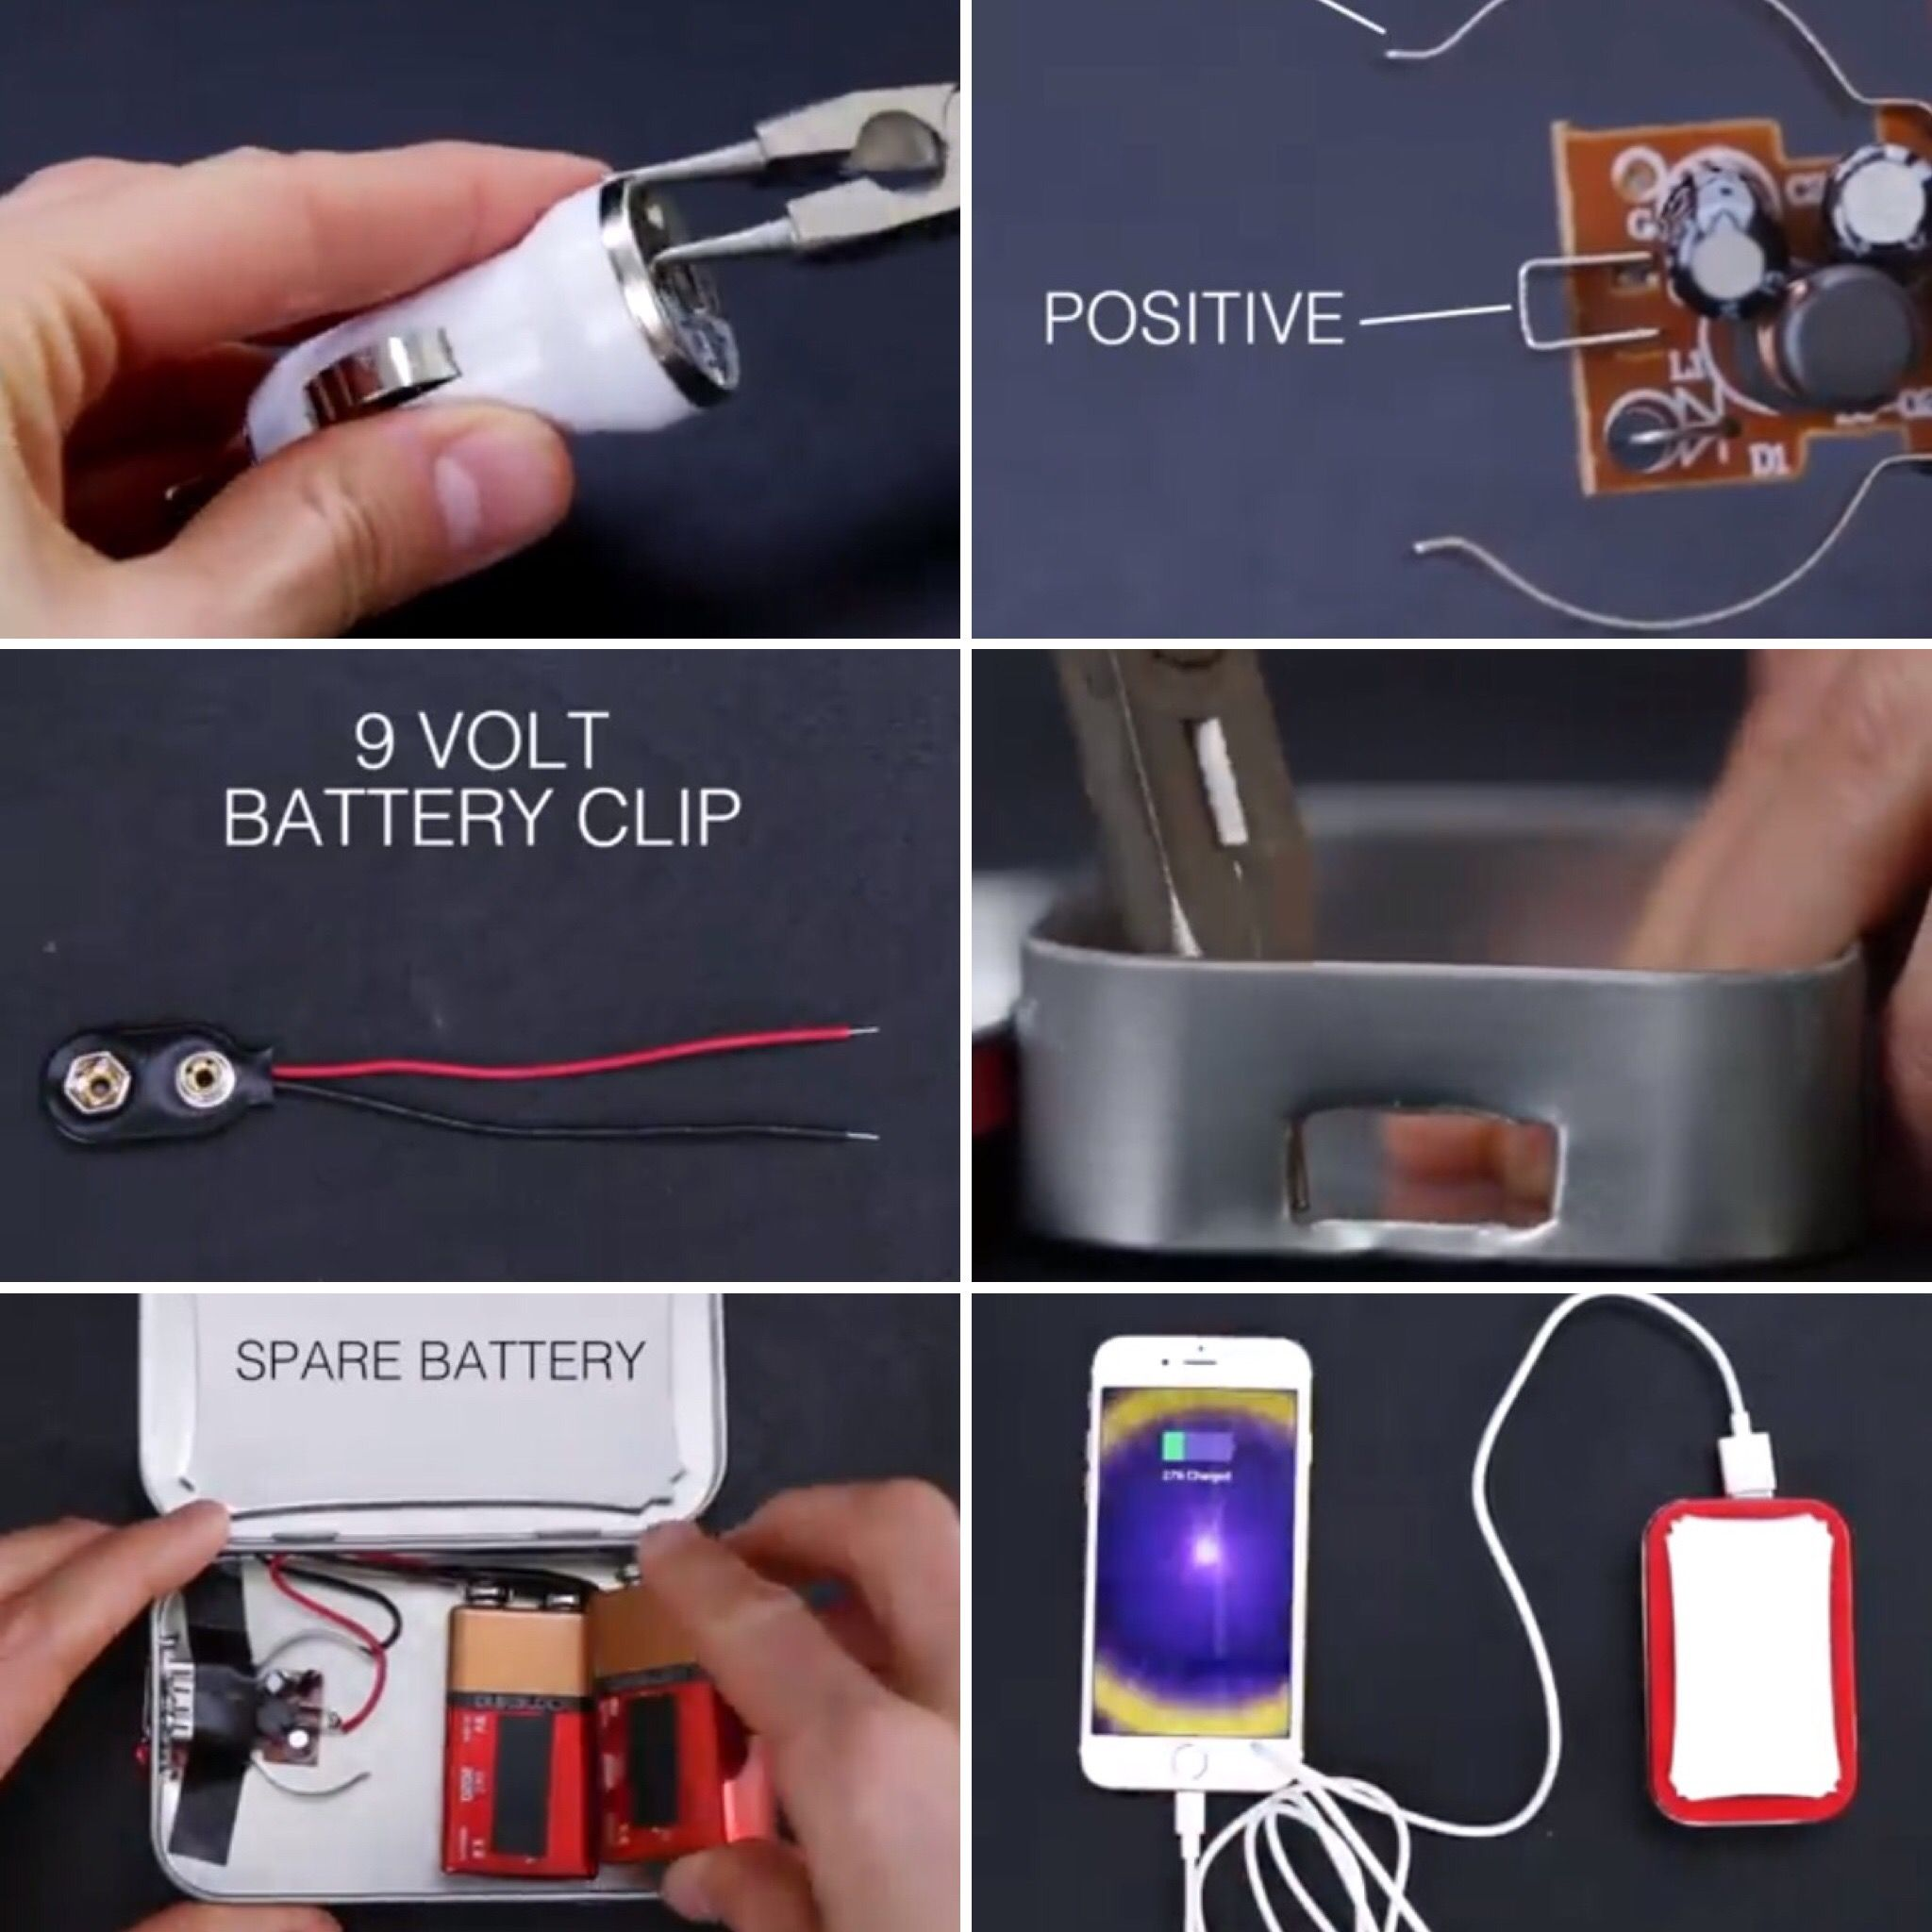 DIY portable cell phone charger